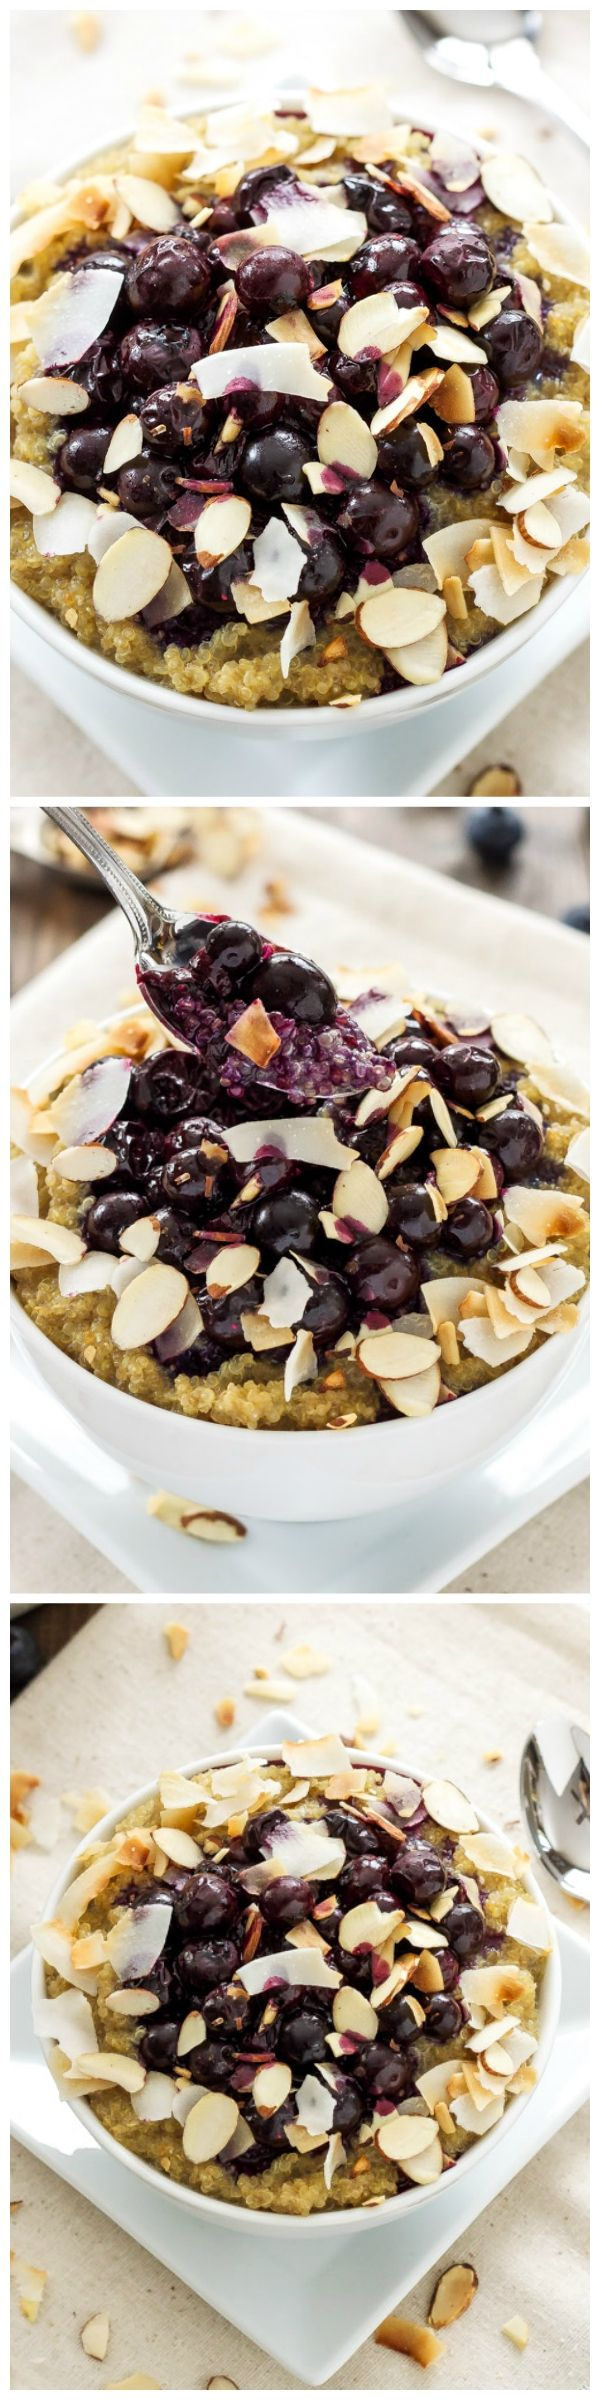 These quinoa breakfast bowls taste as good as blueberry pie and are full of protein!